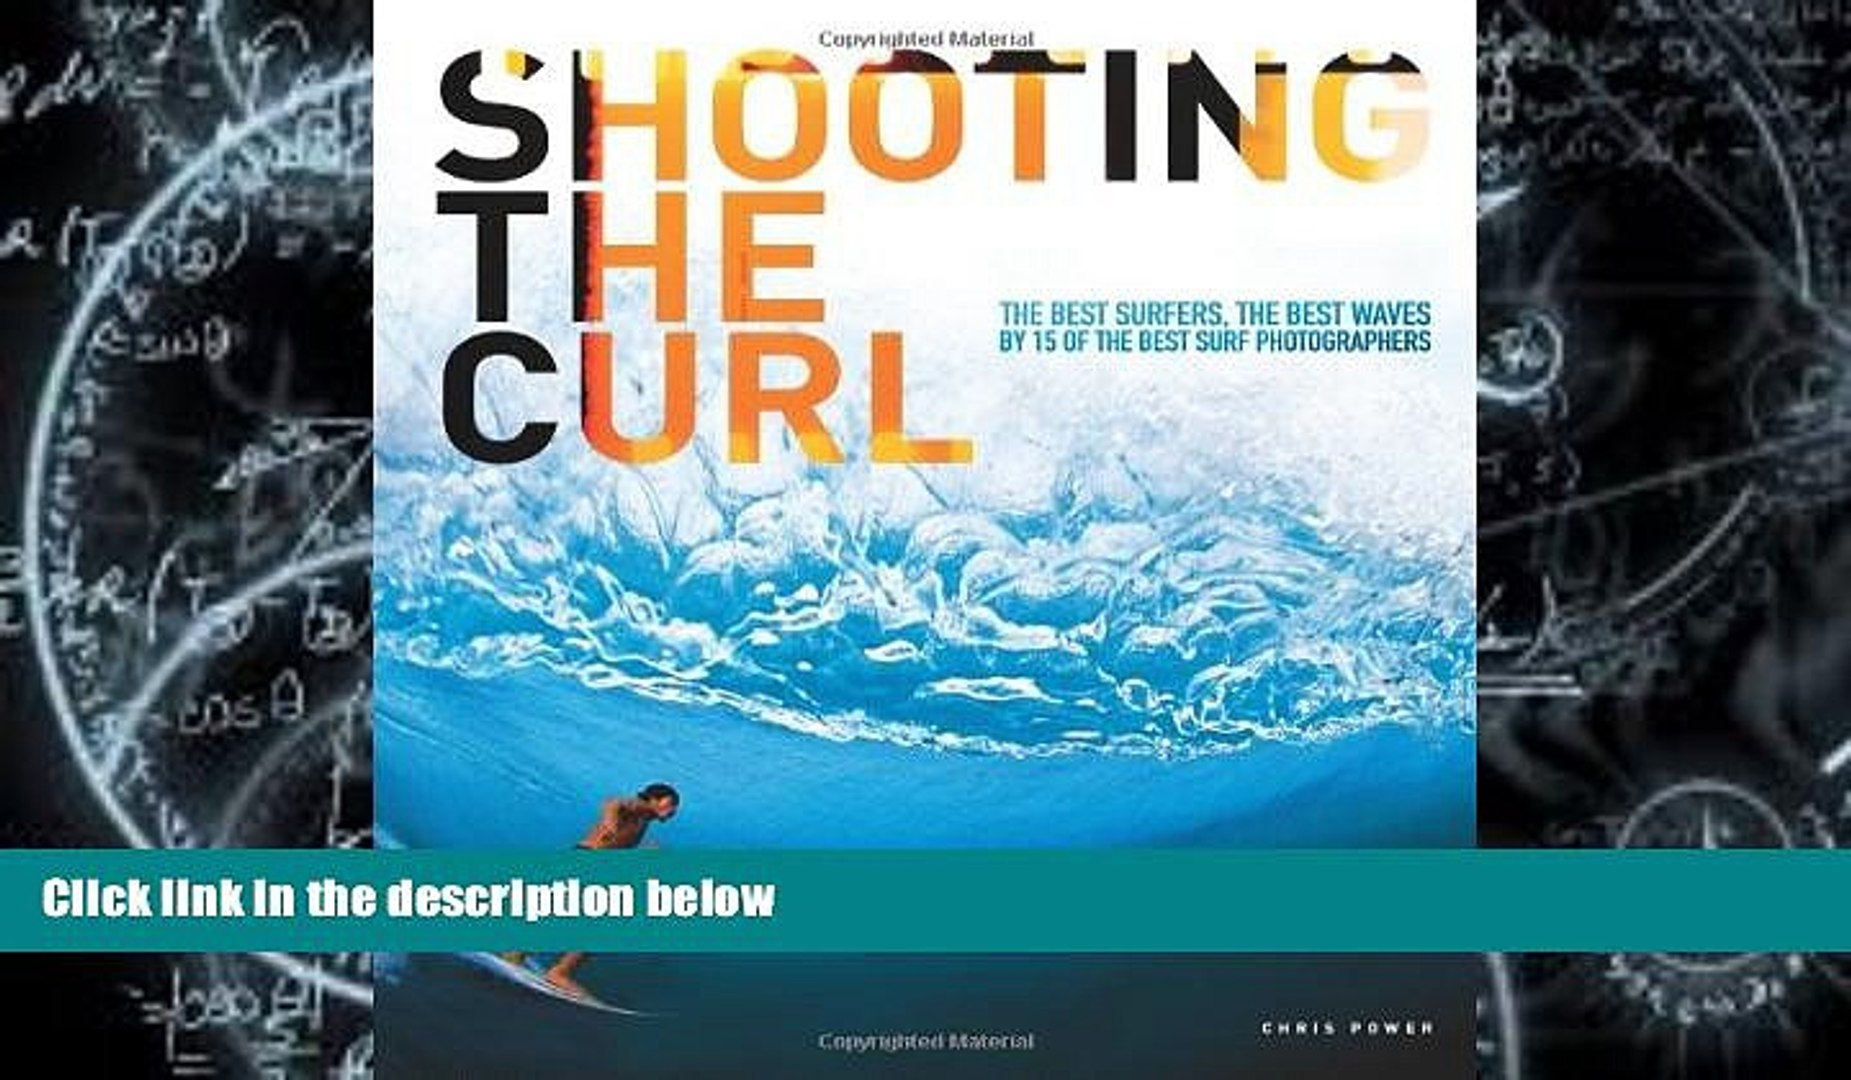 Price Shooting the Curl: The Best Surfers, the Best Waves By 15 of the Best Surf Photographers